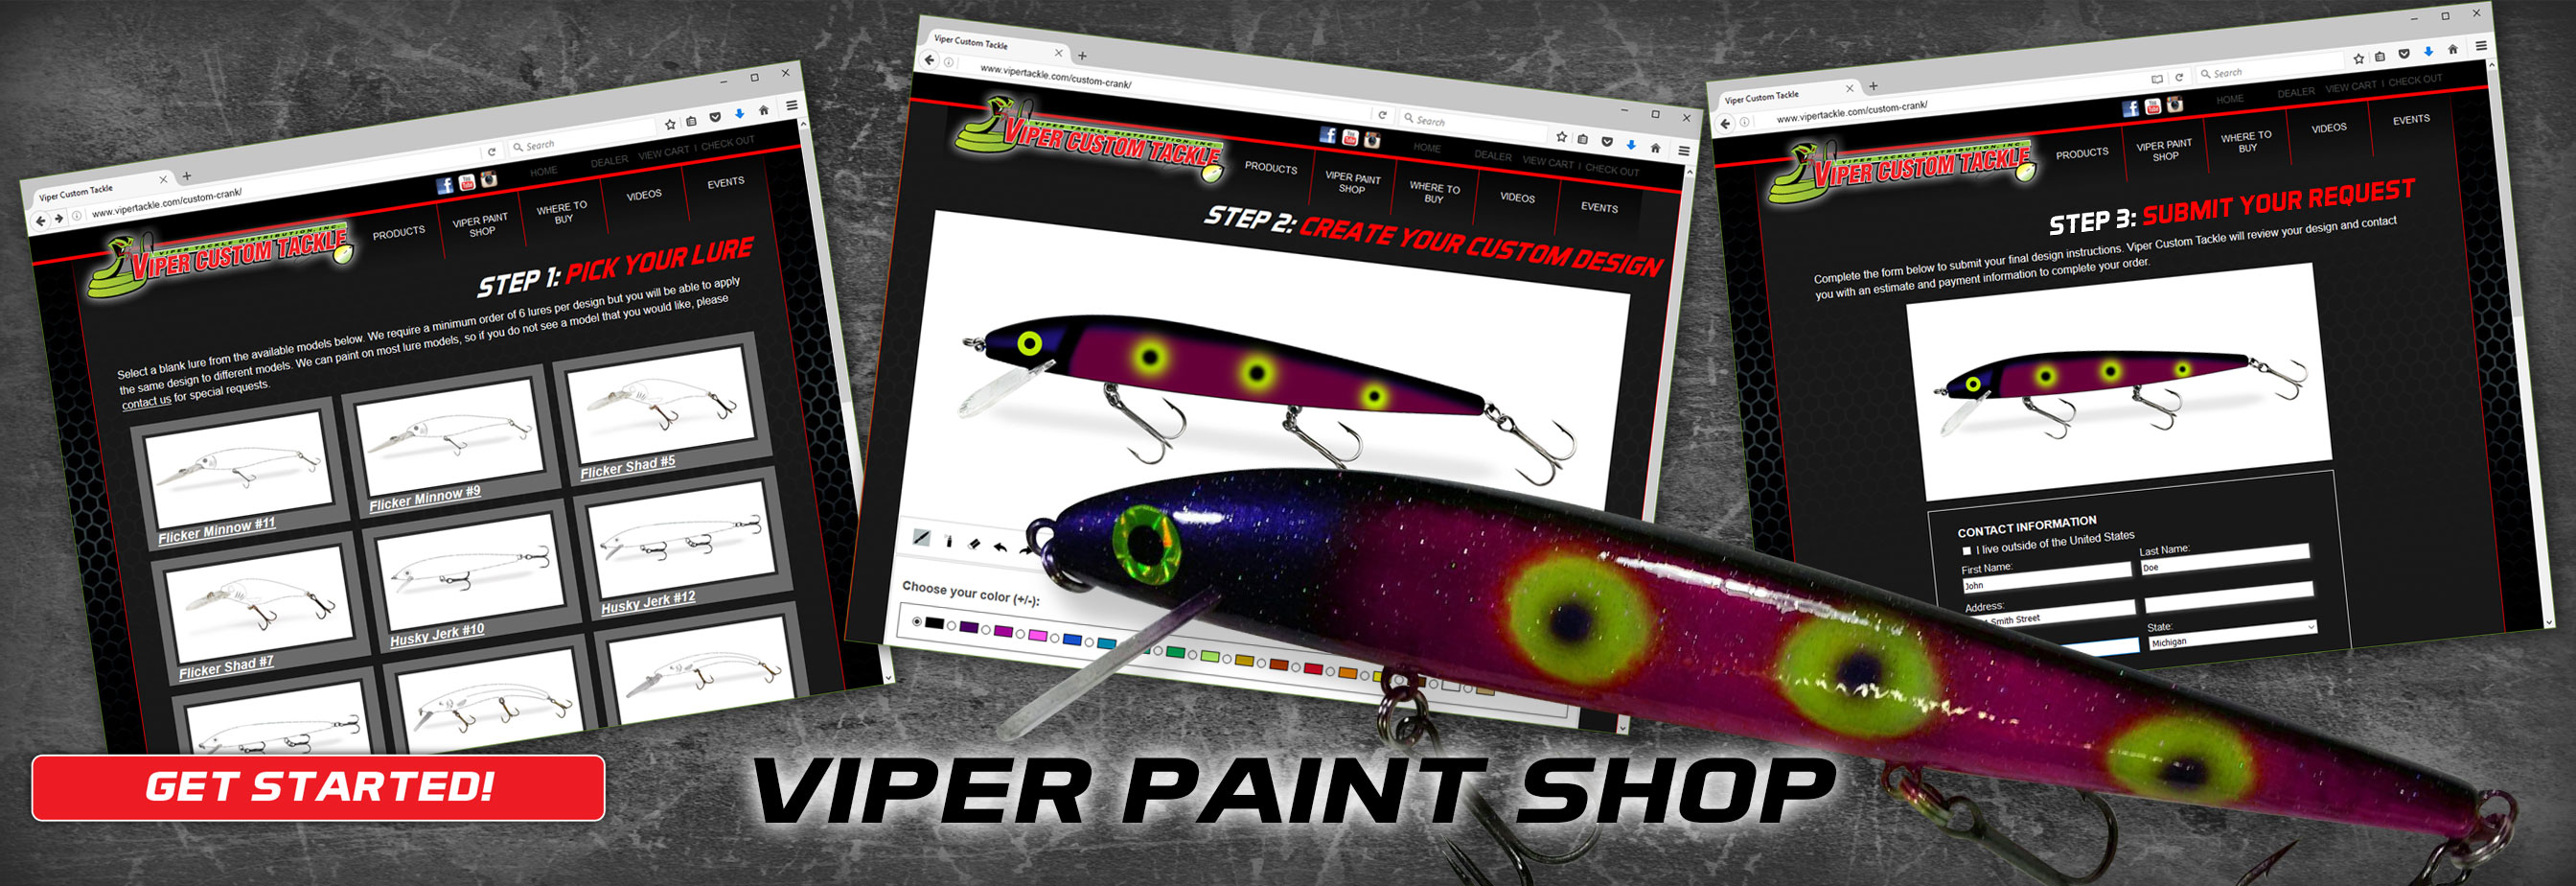 Viper Paint Shop - Create Your Own Custom Cranks!